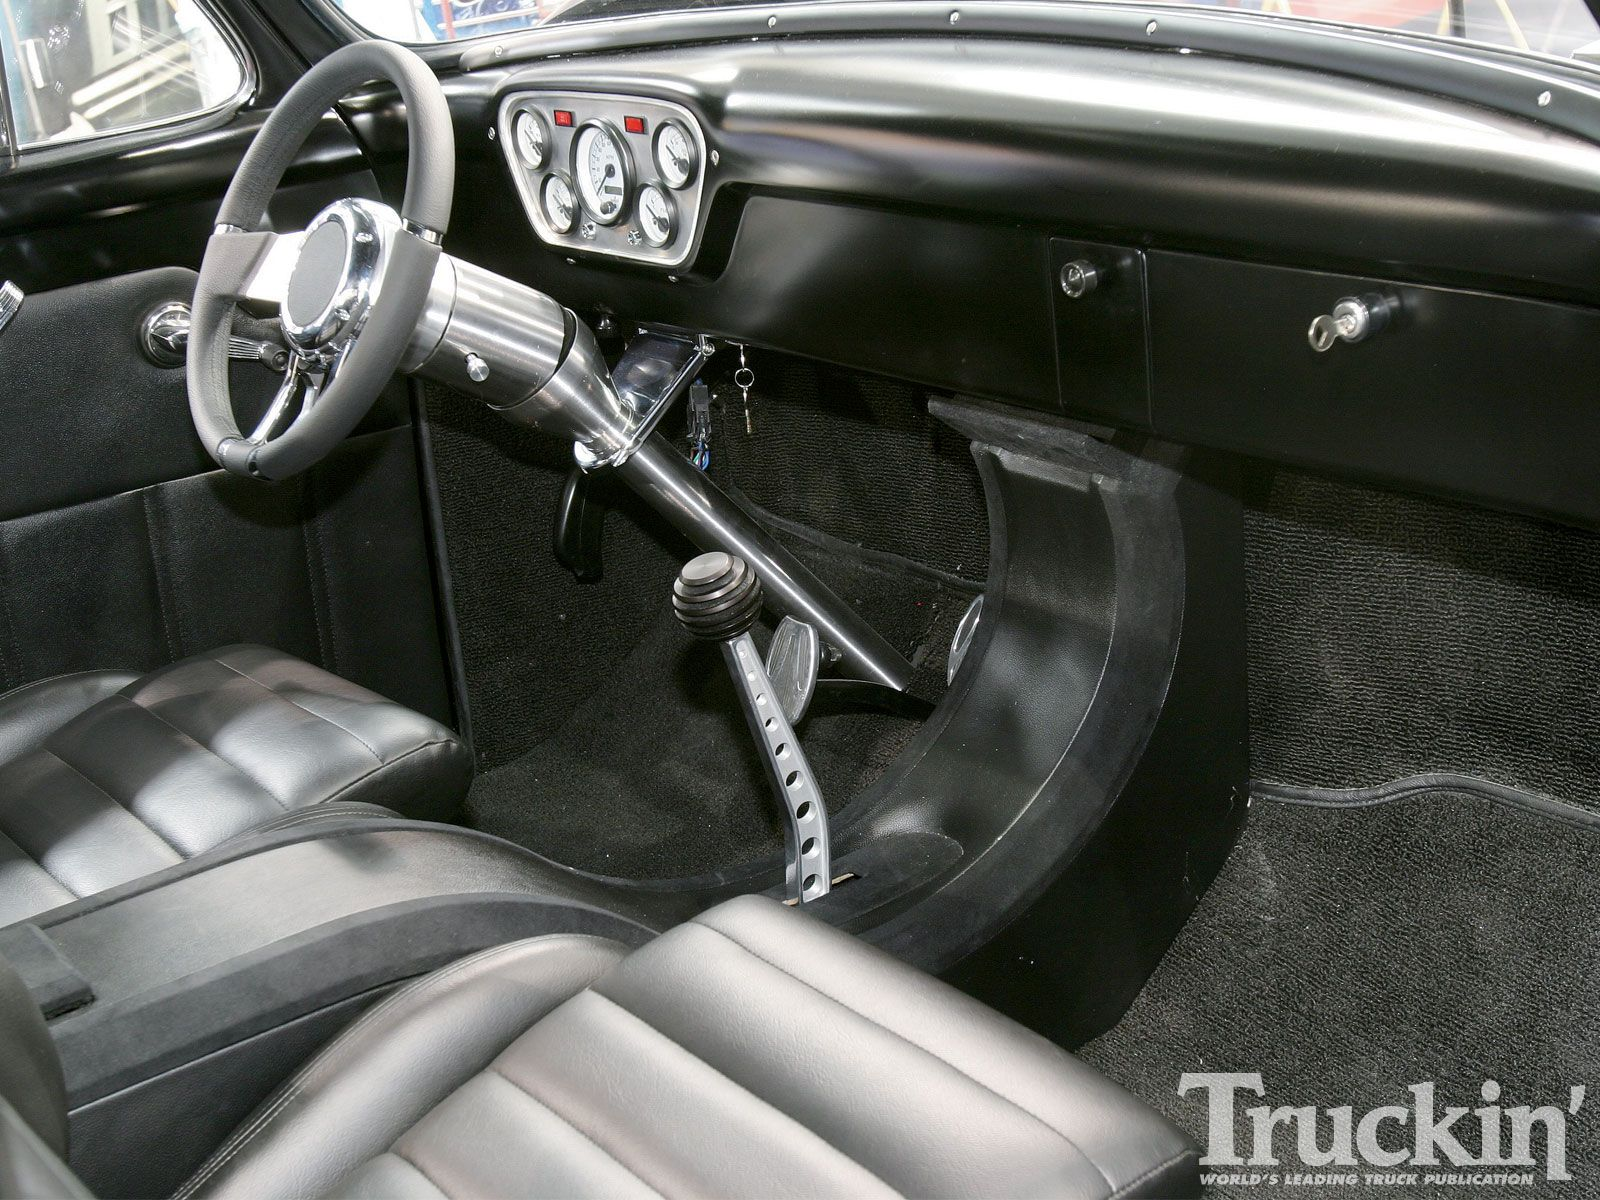 Ford F100 1955 Pick Up Hot Rod Expendables Sylvesterstallone Pickup Truck Gas Pedal Custom Interior